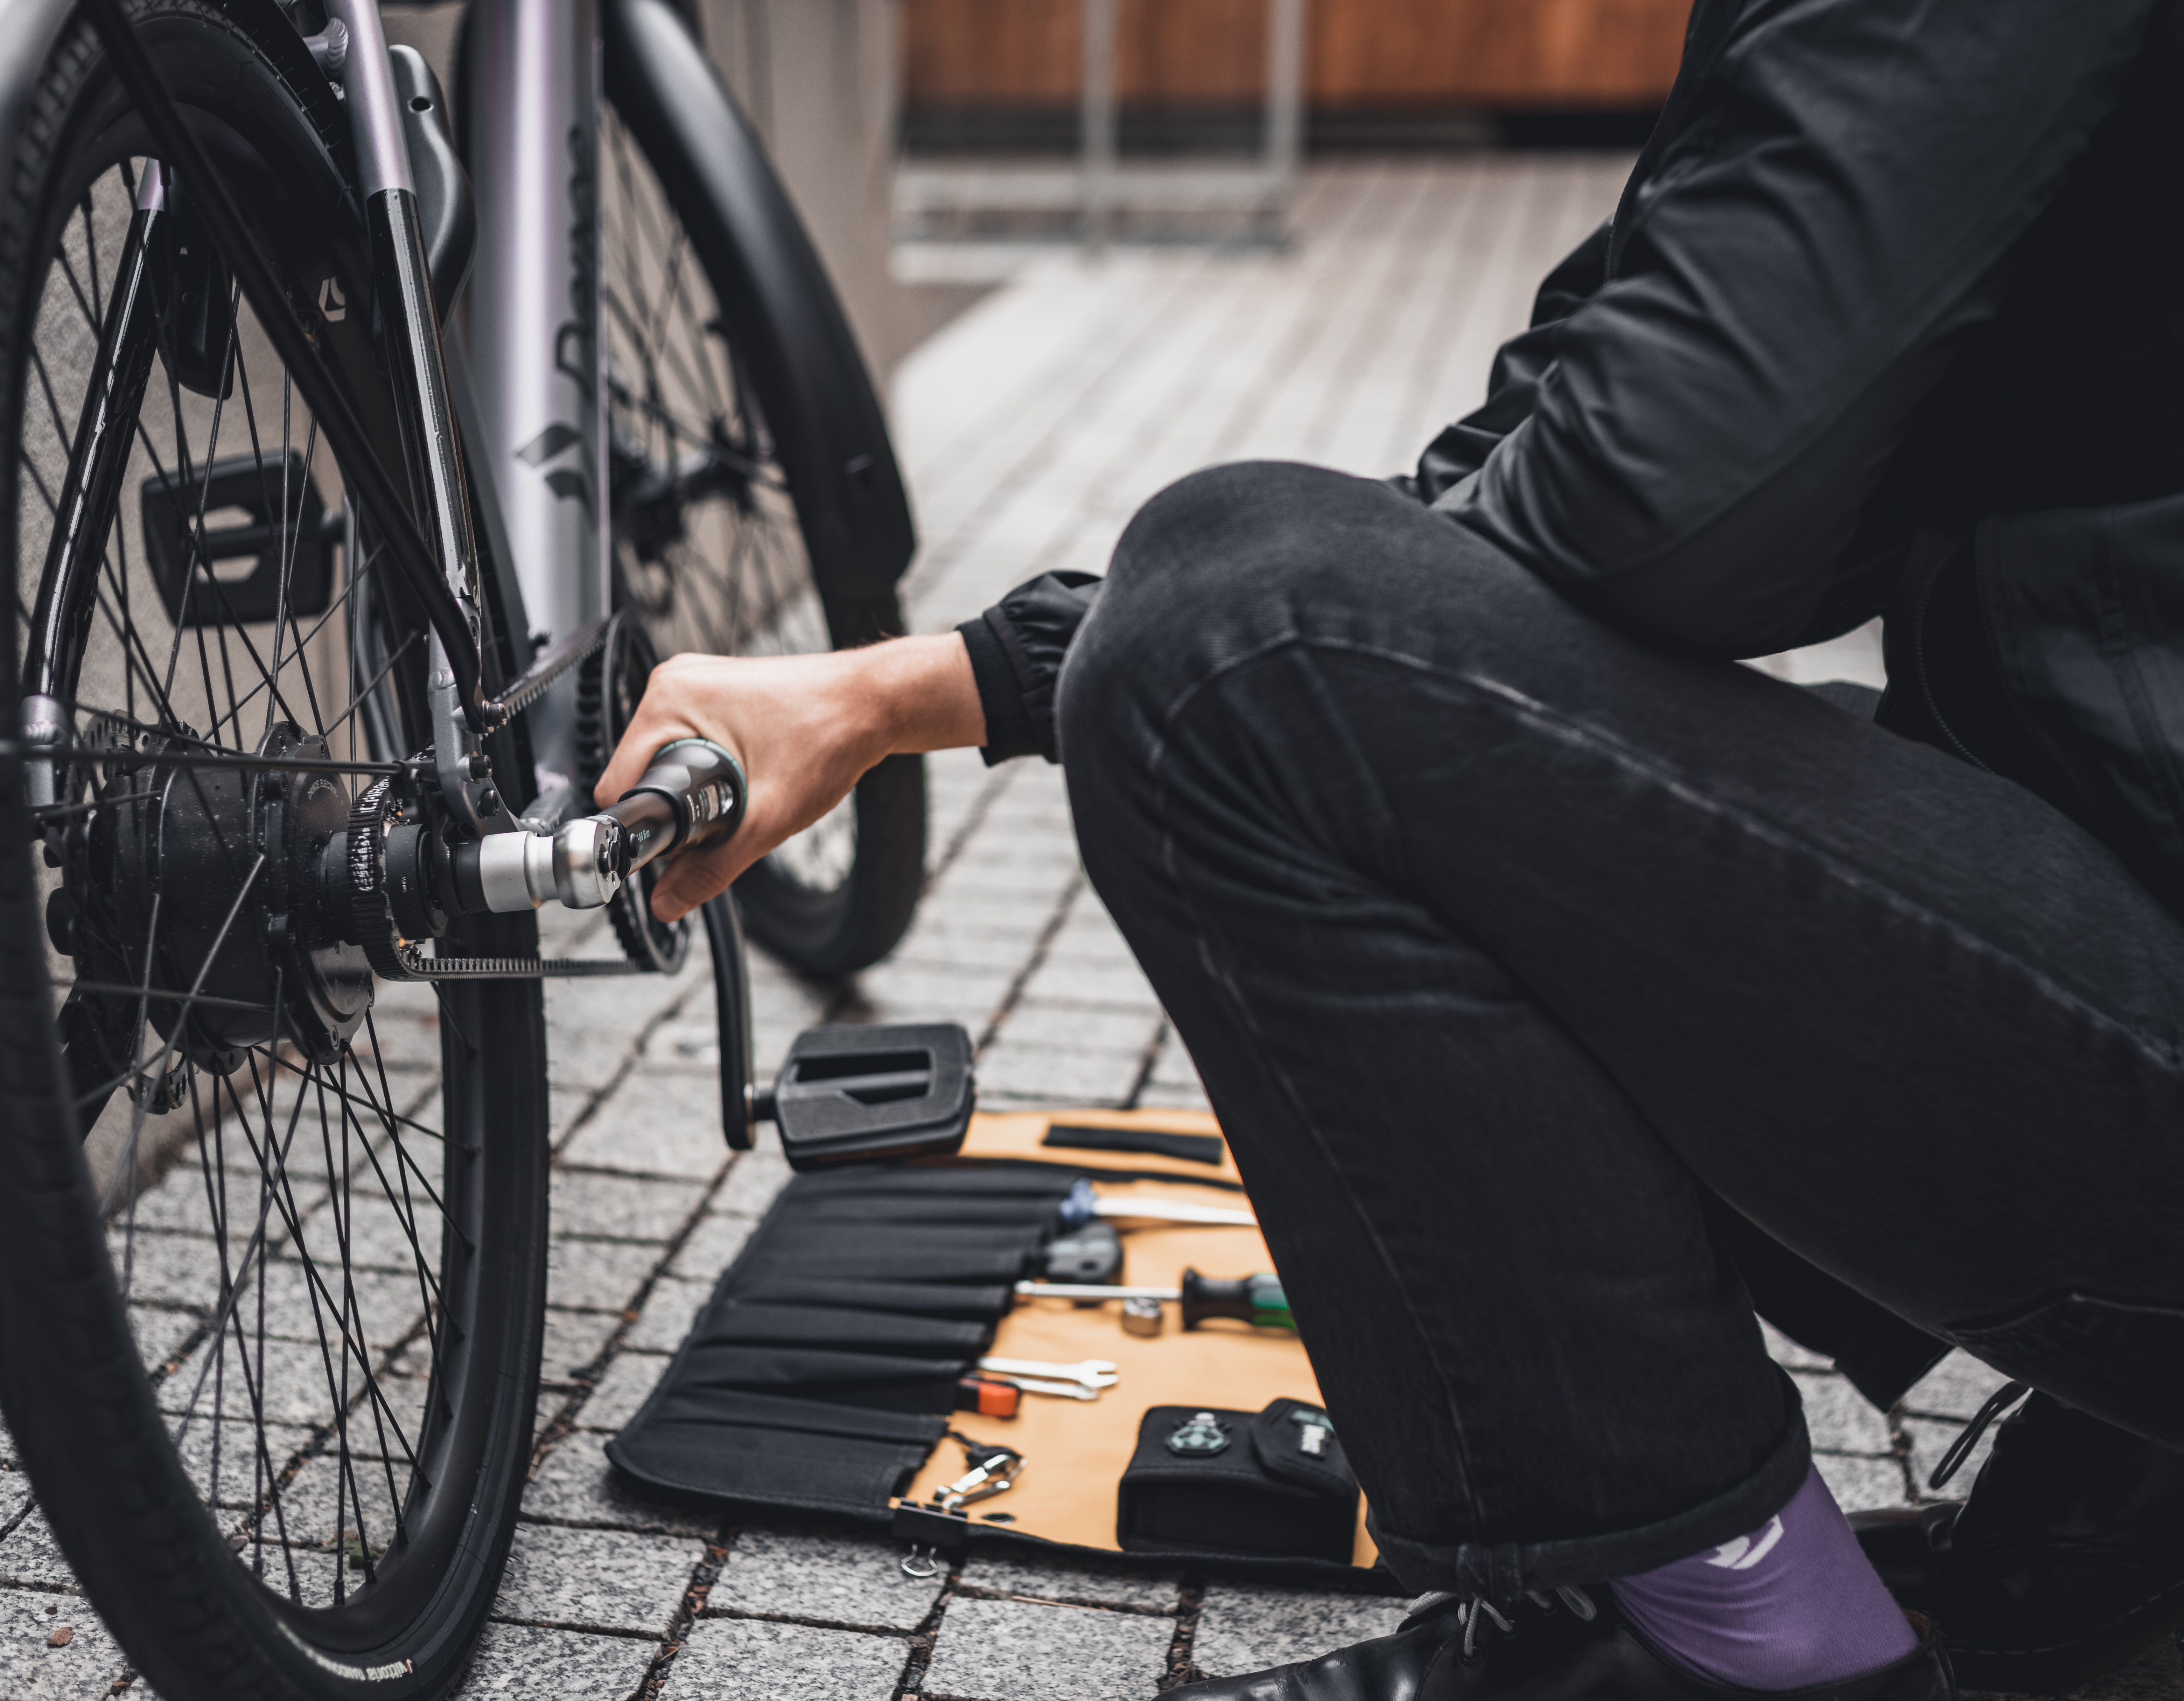 Dance ebikes create a new value offering for bike enthusiasts